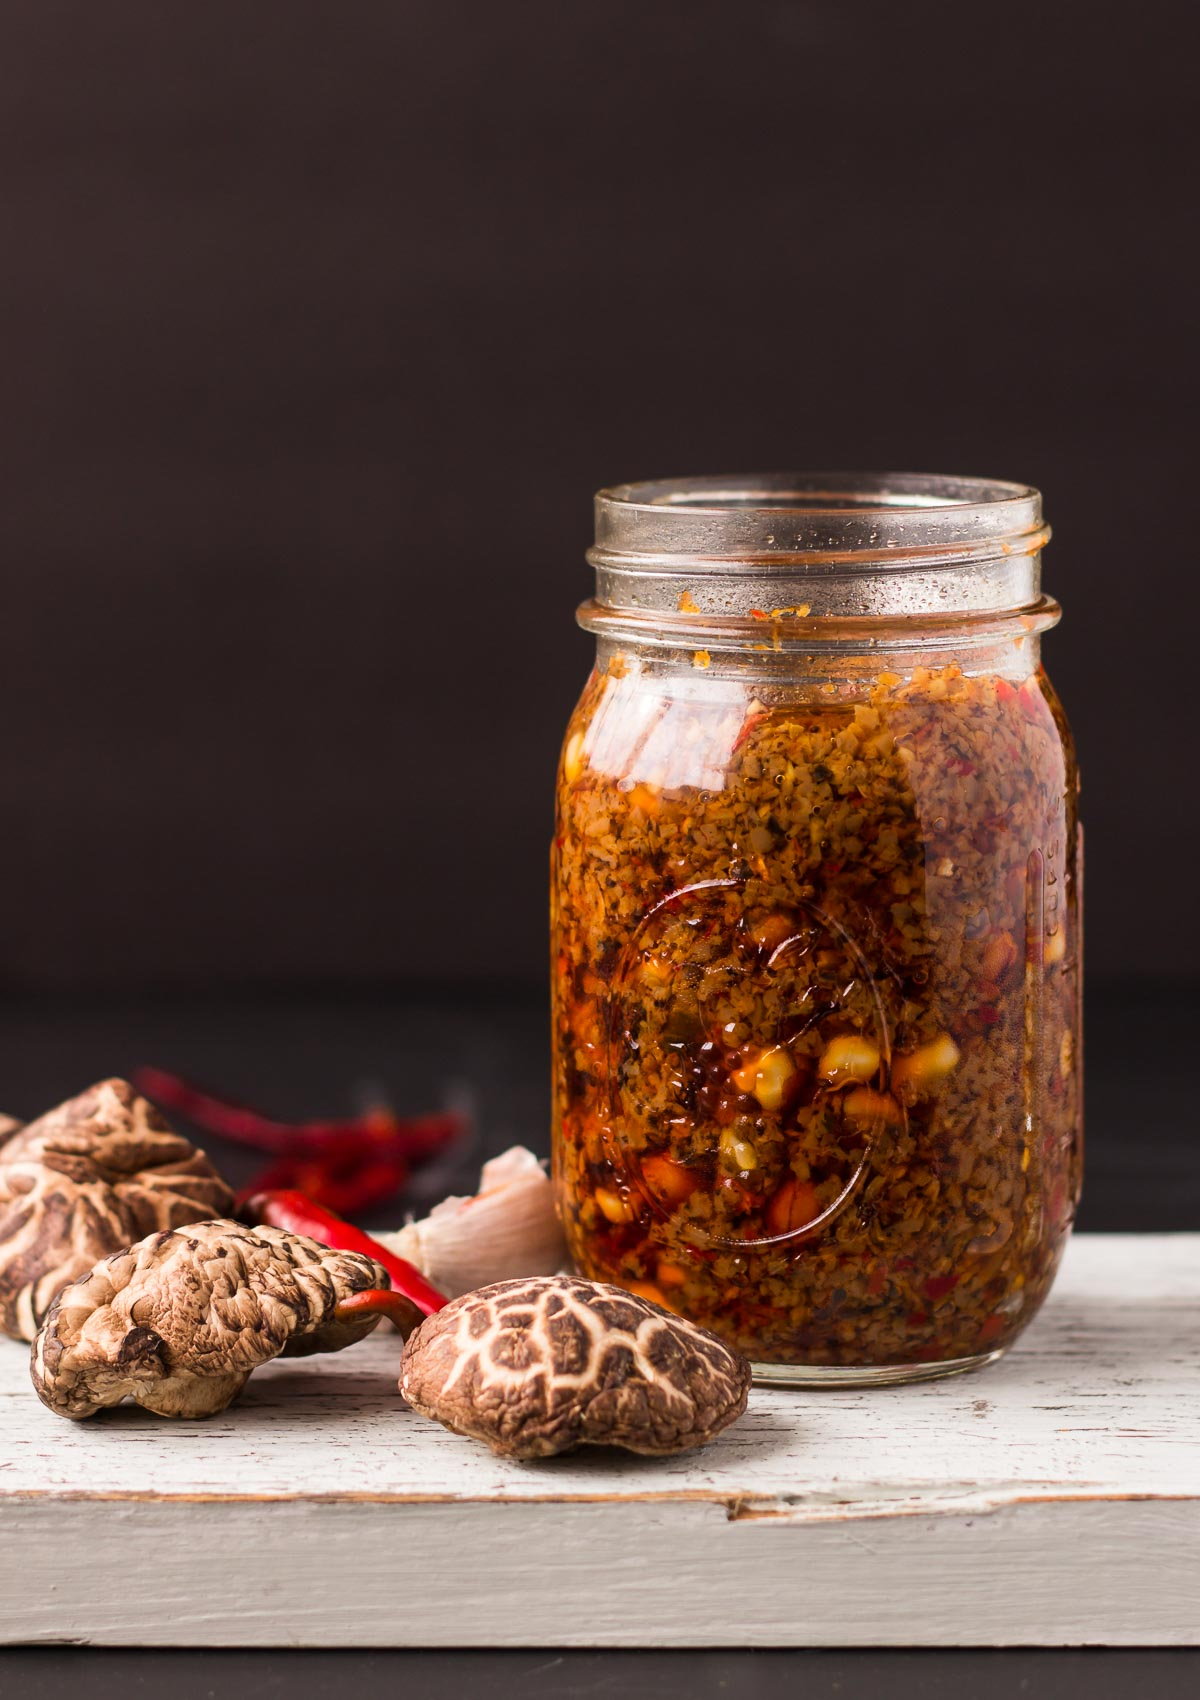 Shiitake Mushroom Chili Sauce-front view-in a glass jar-red chilis and dried shiitake mushrooms on the left side